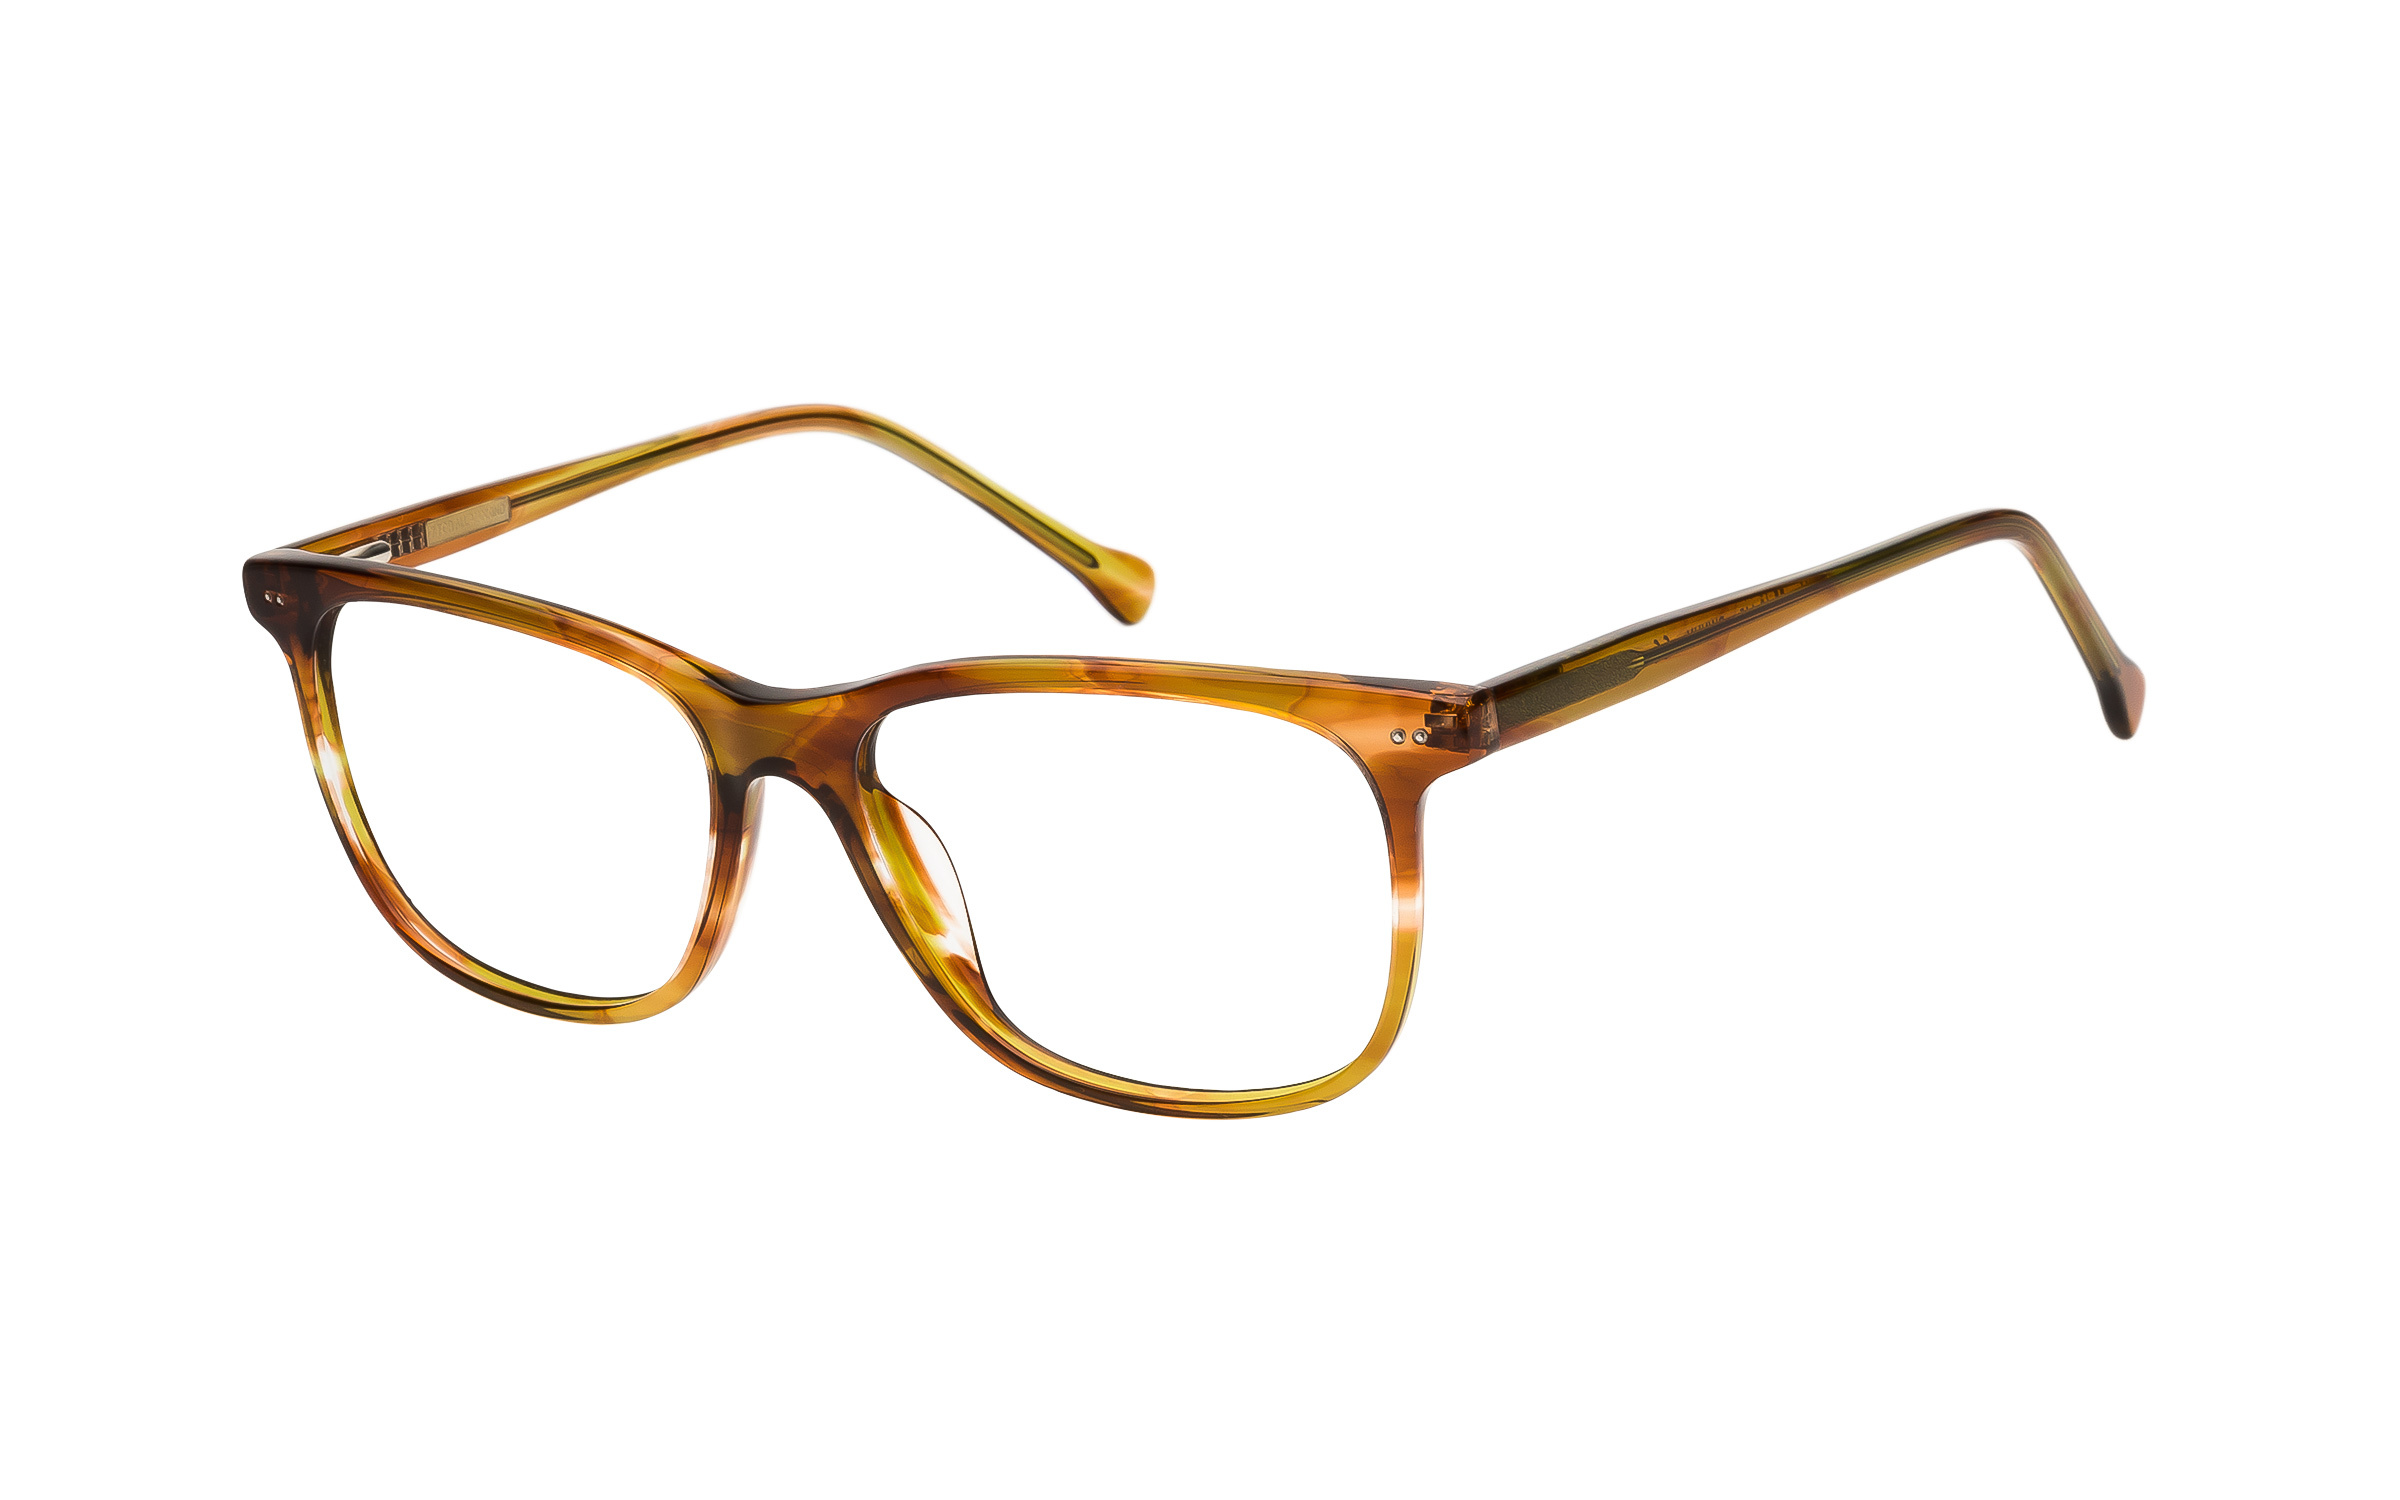 7 for All Mankind Glasses D-Frame Brown/Yellow/Clear Online Clearly